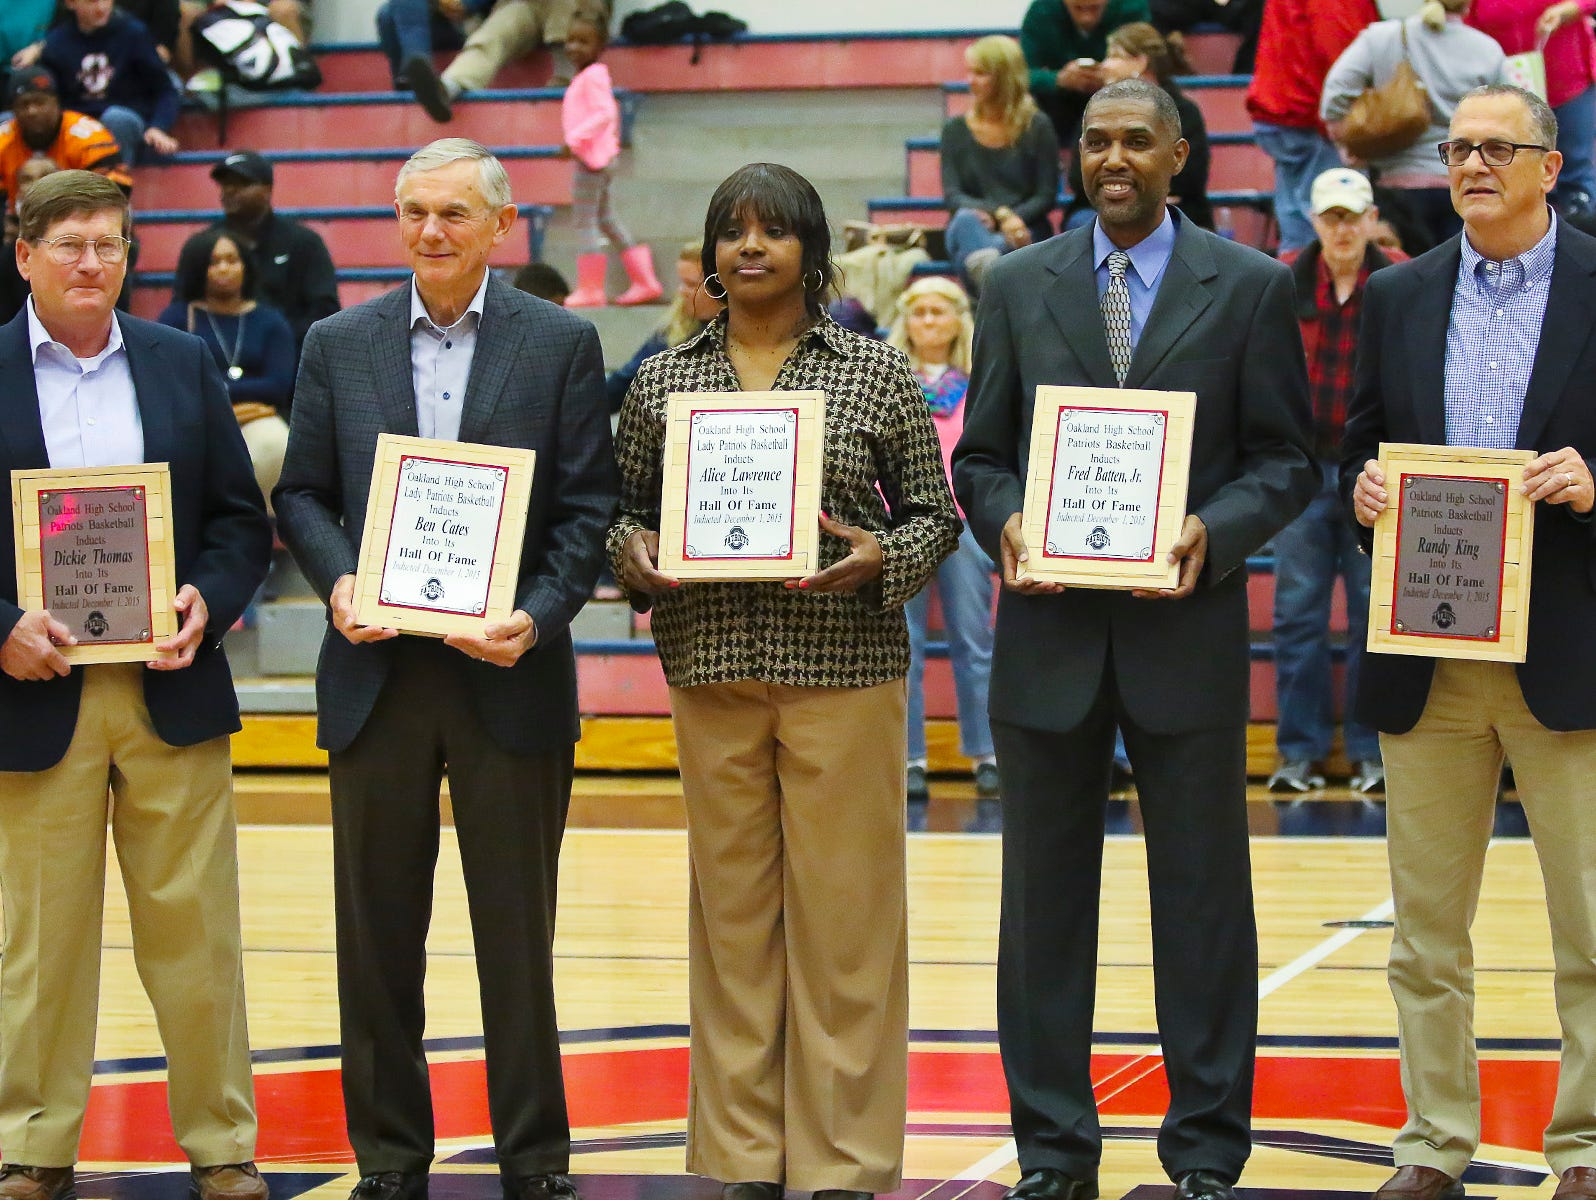 Oakland inducted its first basketball hall of fame class on Tuesday. From left, former boys coach Dickie Thomas, former girls coach Ben Cates, former girls standout Alice Lawrence, former boys standout Fred Batten Jr. and former boys coach Randy King were all inducted.